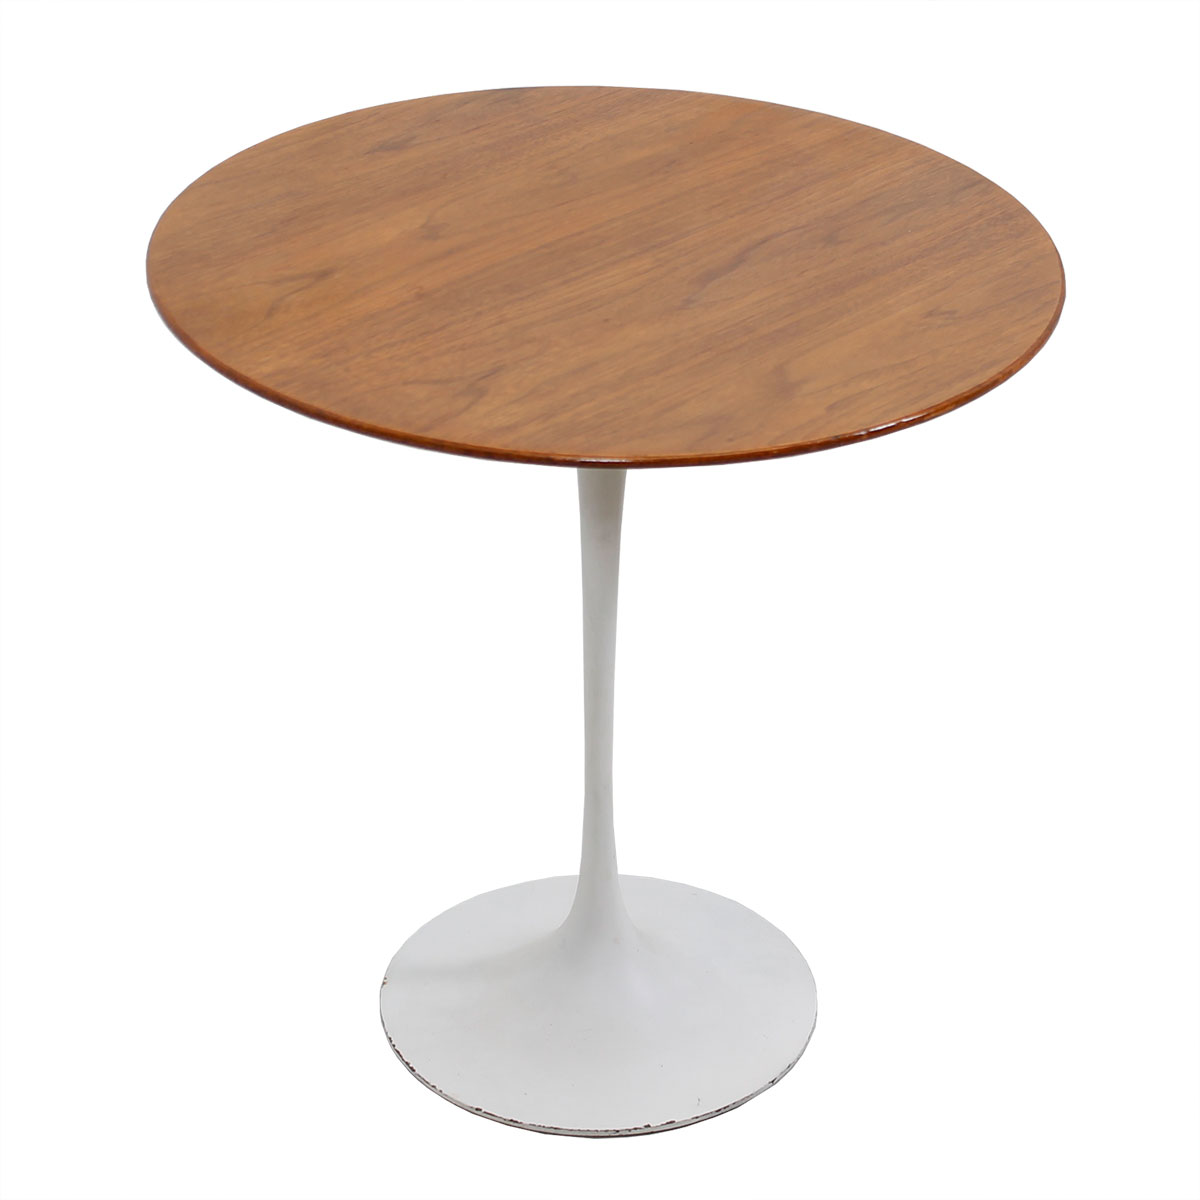 Early Eero Saarinen Walnut Top Accent / End Table by Knoll